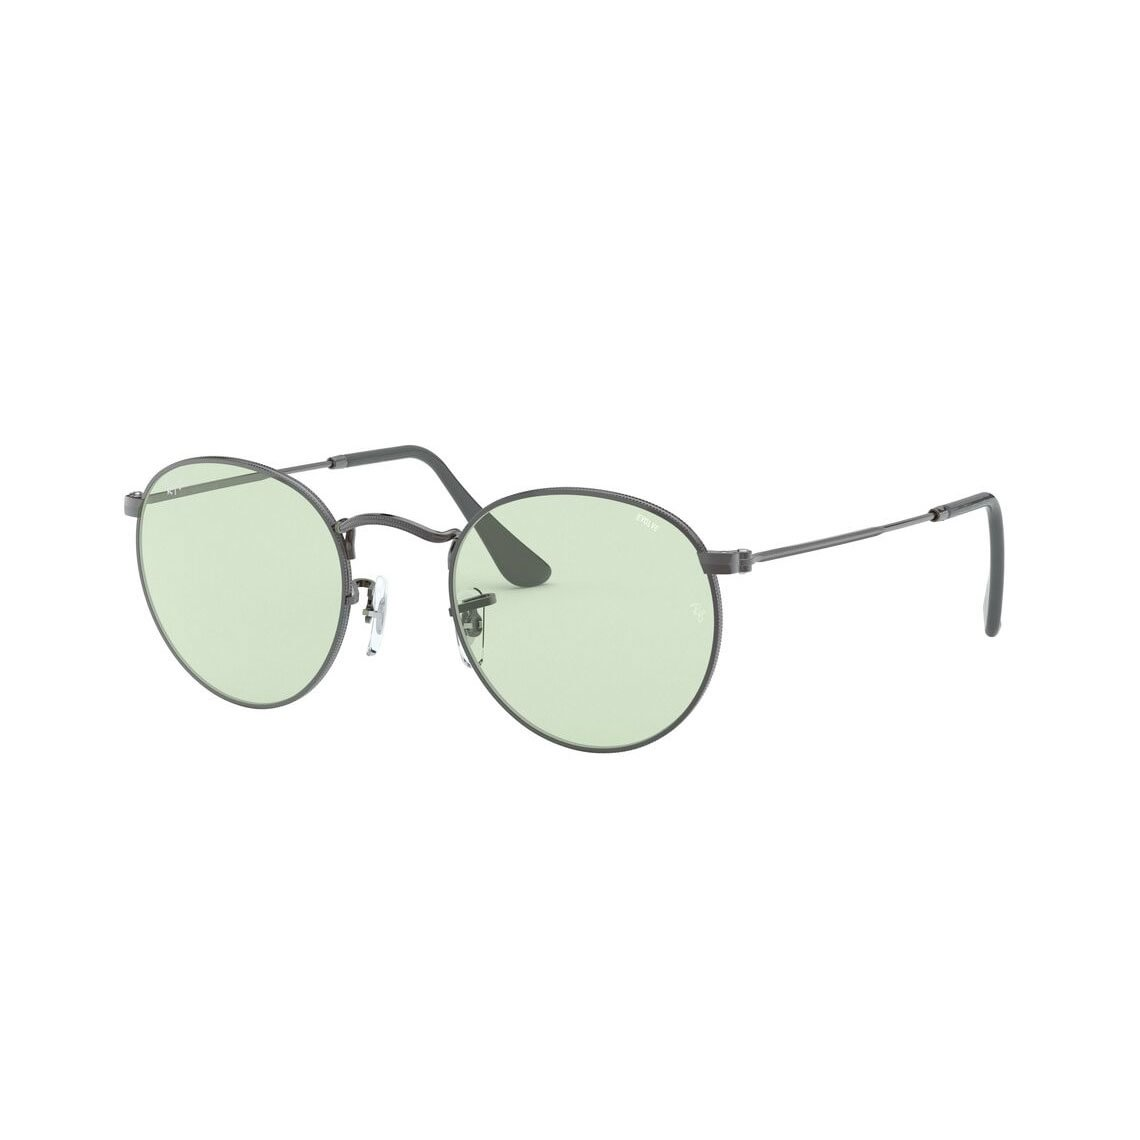 Ray-Ban Round metal RB3447 Solid Evolve 004/T1 5321